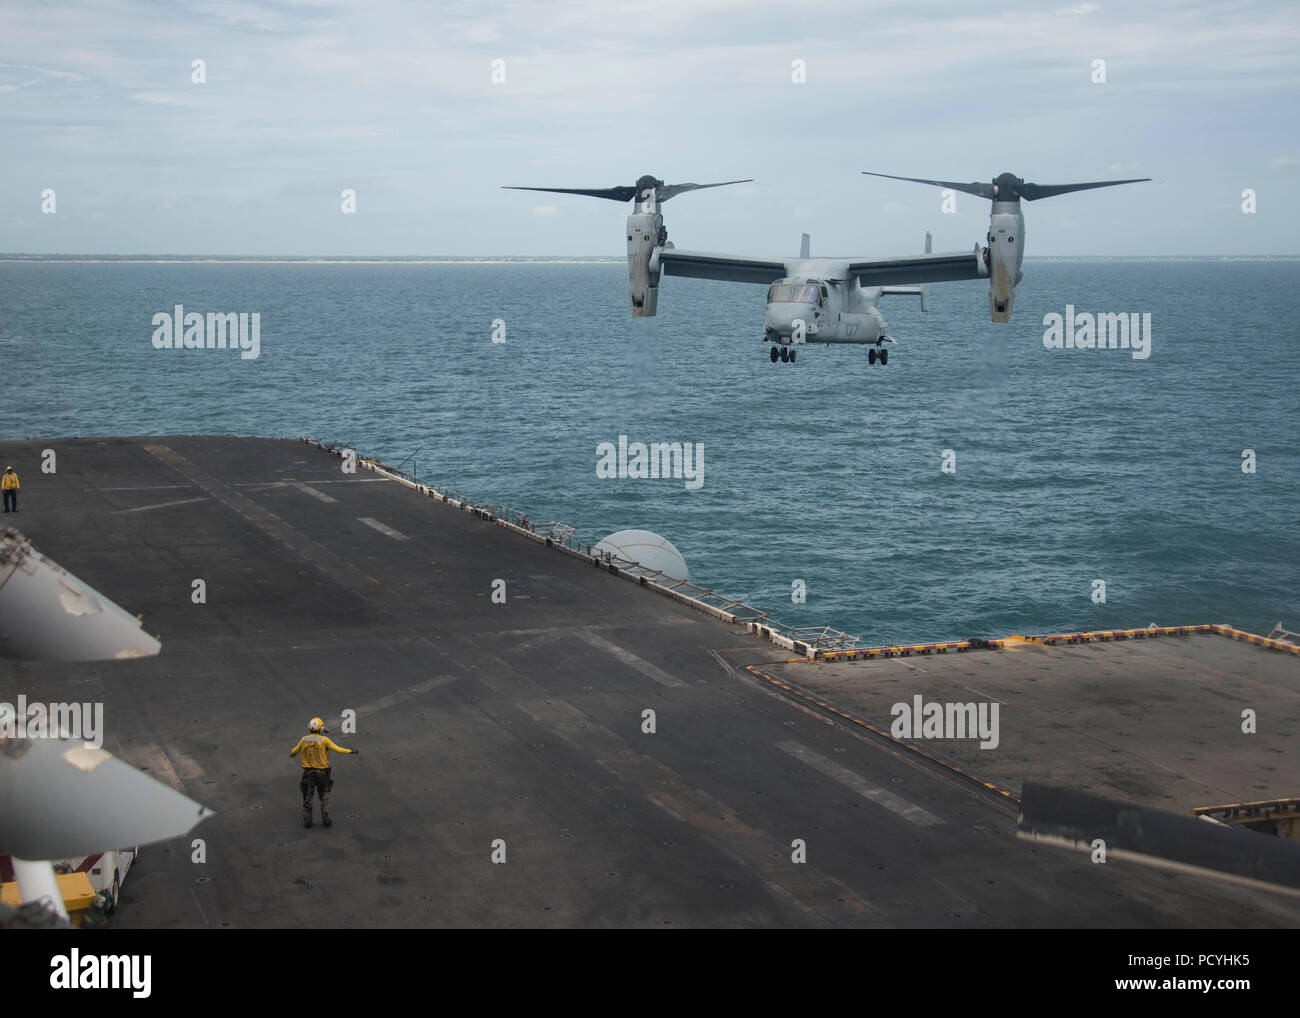 180803-N-ZG607-0023  ATLANTIC OCEAN (Aug. 3, 2018) An MV-22B Osprey, attached to Marine Medium Tiltrotor Squadron (VMM) 162 (Reinforced), prepares to land on the flight deck of the Wasp-class amphibious assault ship USS Iwo Jima (LHD 7), Aug. 3, 2018. Iwo Jima is deployed with its amphibious ready group in support of maritime security operations and theatre security cooperation efforts in Europe and the Middle East. (U.S. Navy photo by Mass Communication Specialist 3rd Class Dominick A. Cremeans/Released) Stock Photo